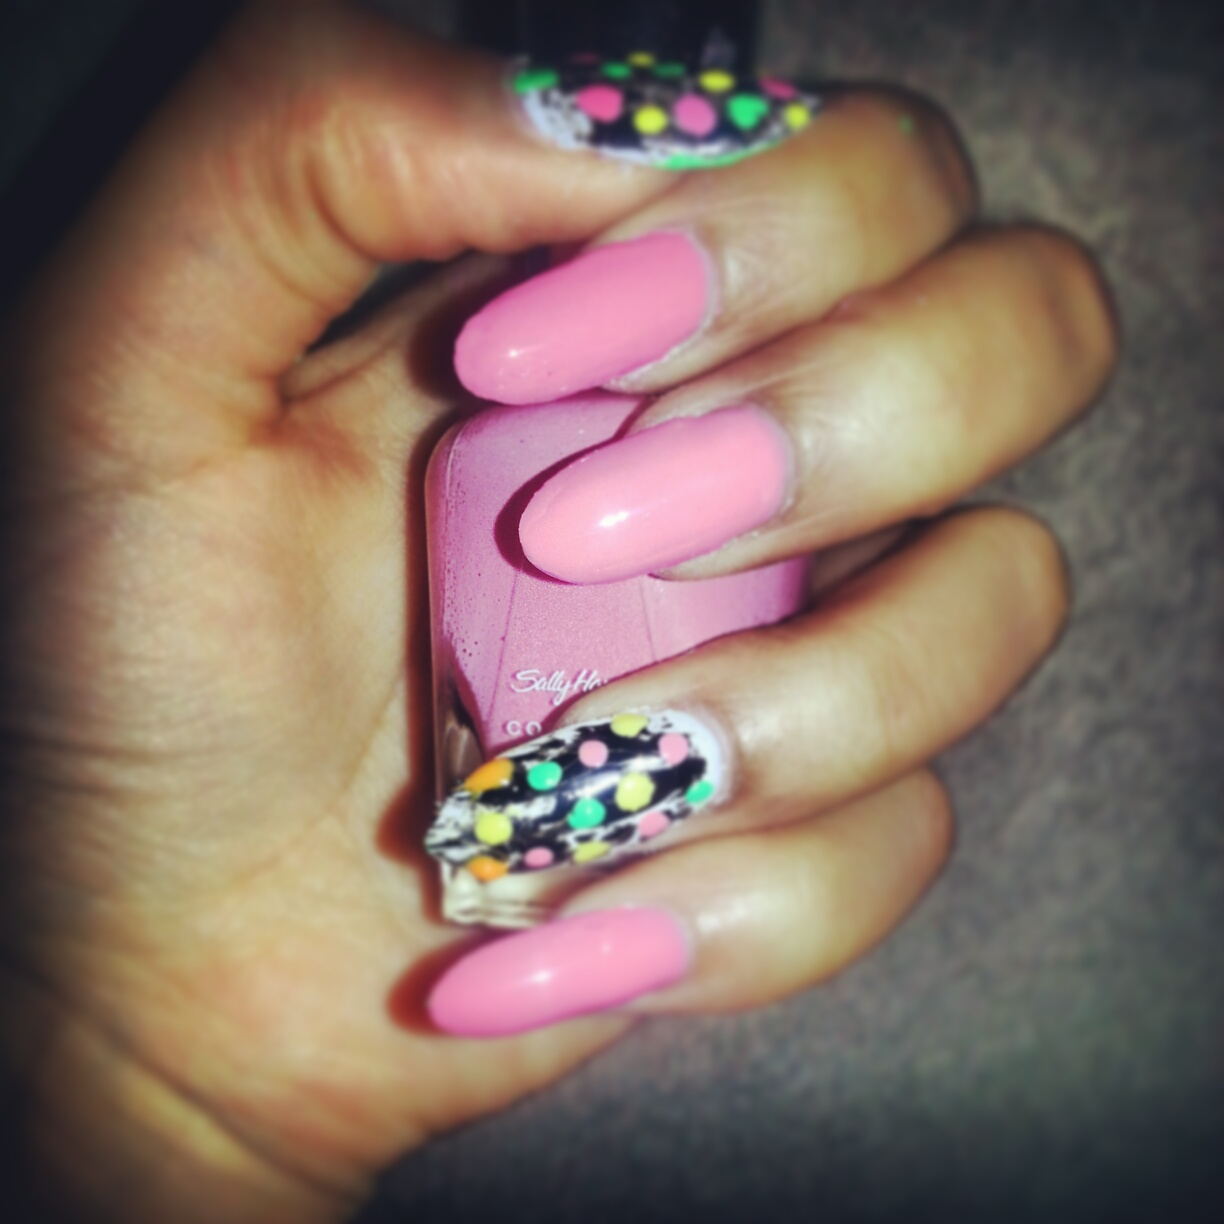 13 Crazy Stiletto Nail Designs Images